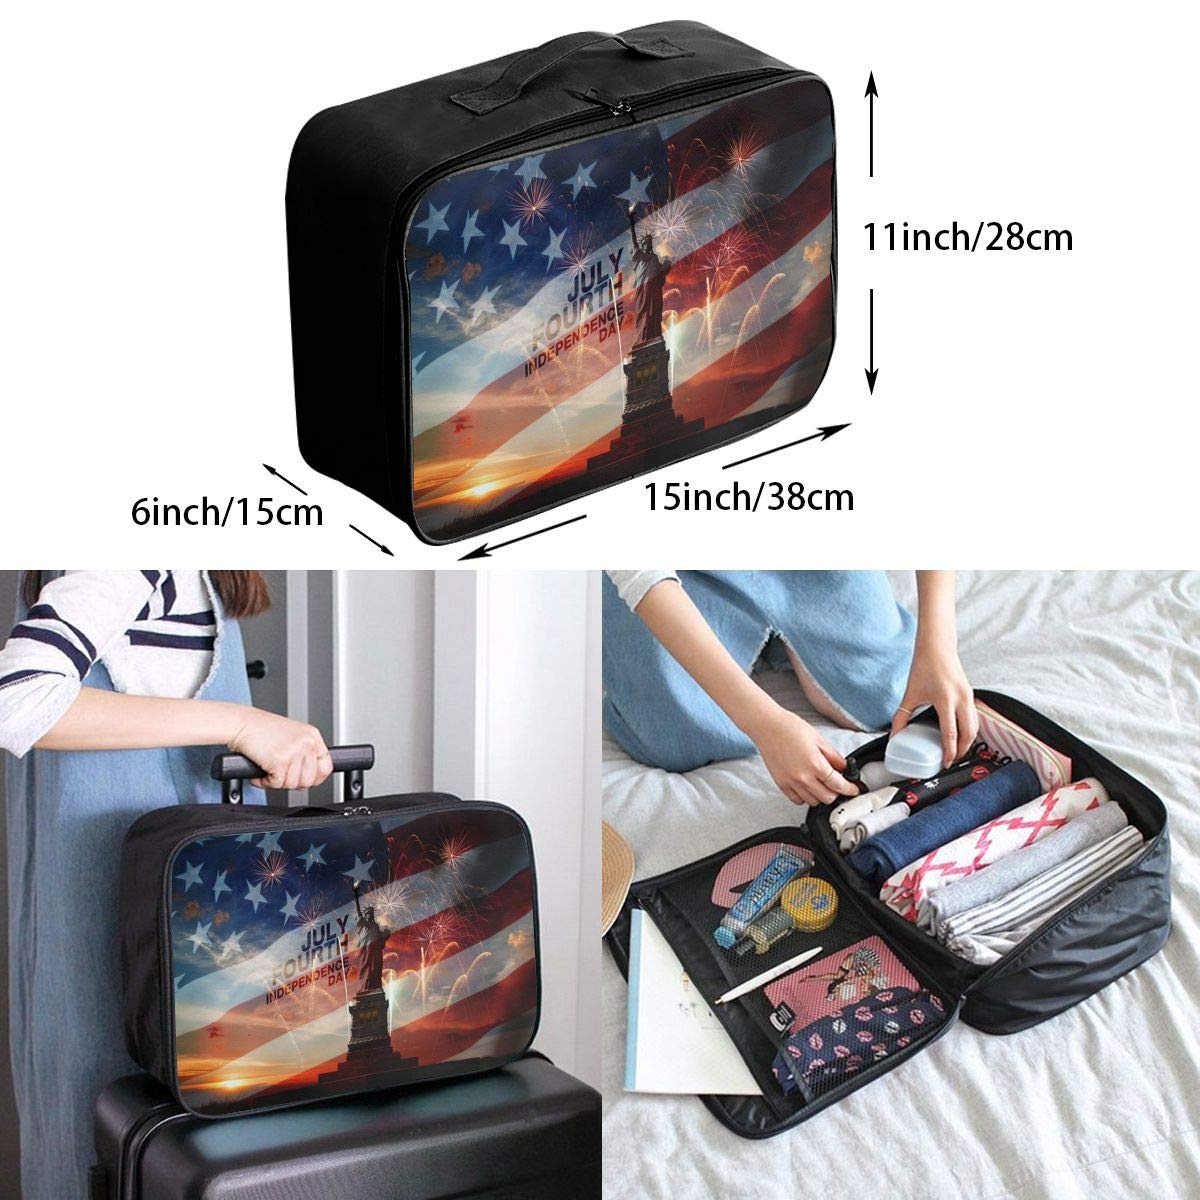 Travel Luggage Duffle Bag Lightweight Portable Handbag The Flag Of The United States Statue Of Liberty Large Capacity Waterproof Foldable Storage Tote